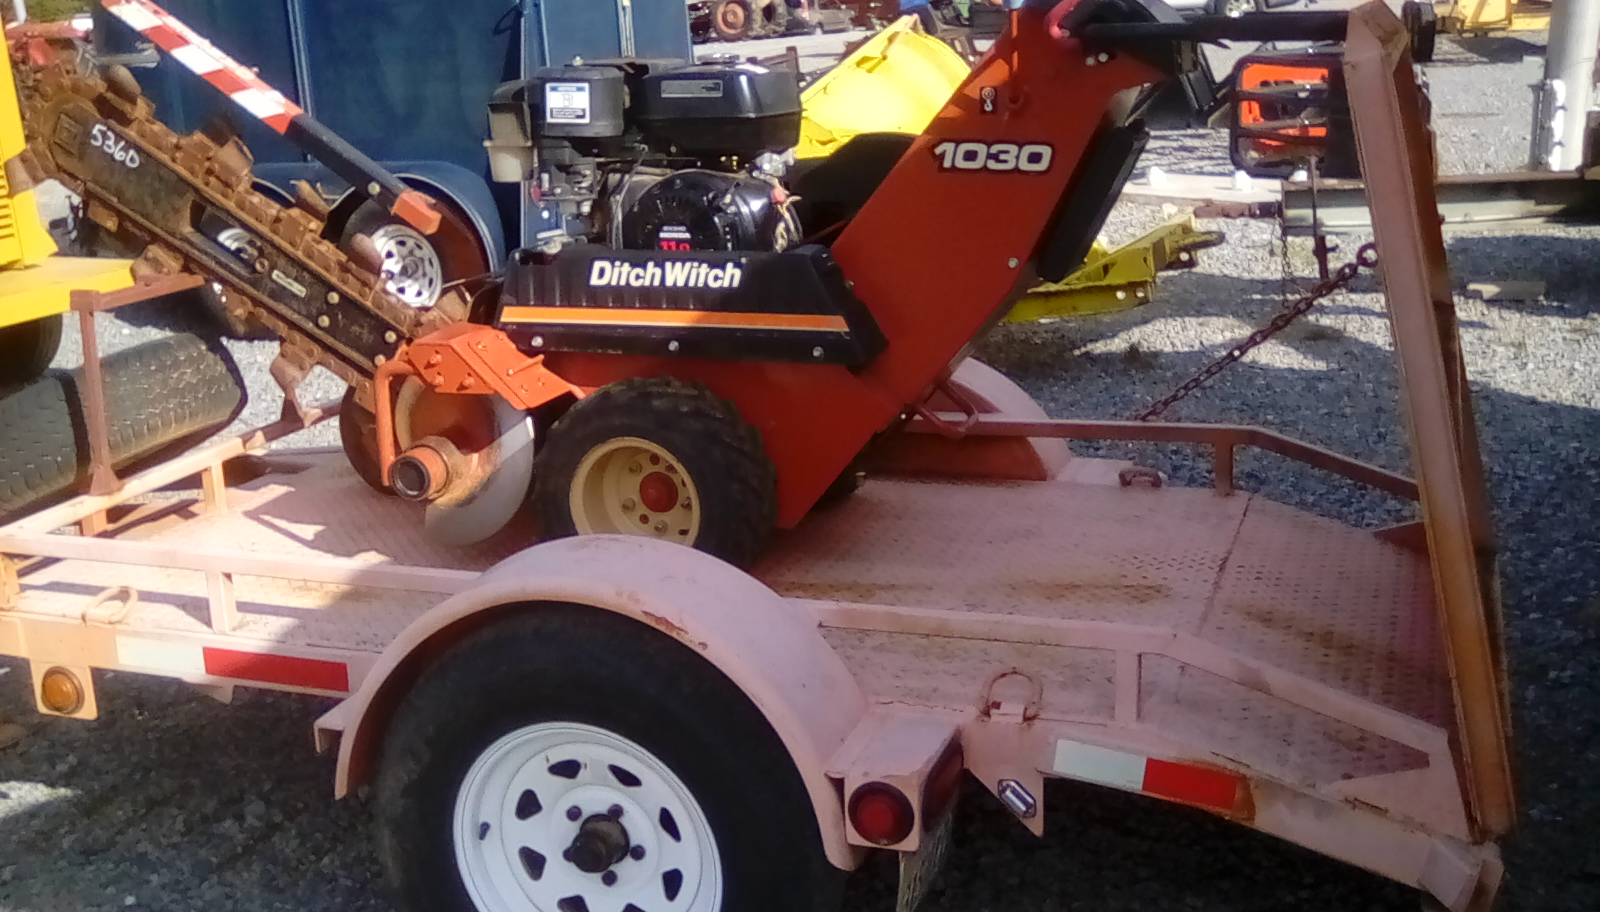 DITCH WITCH W/ TRAILER Image